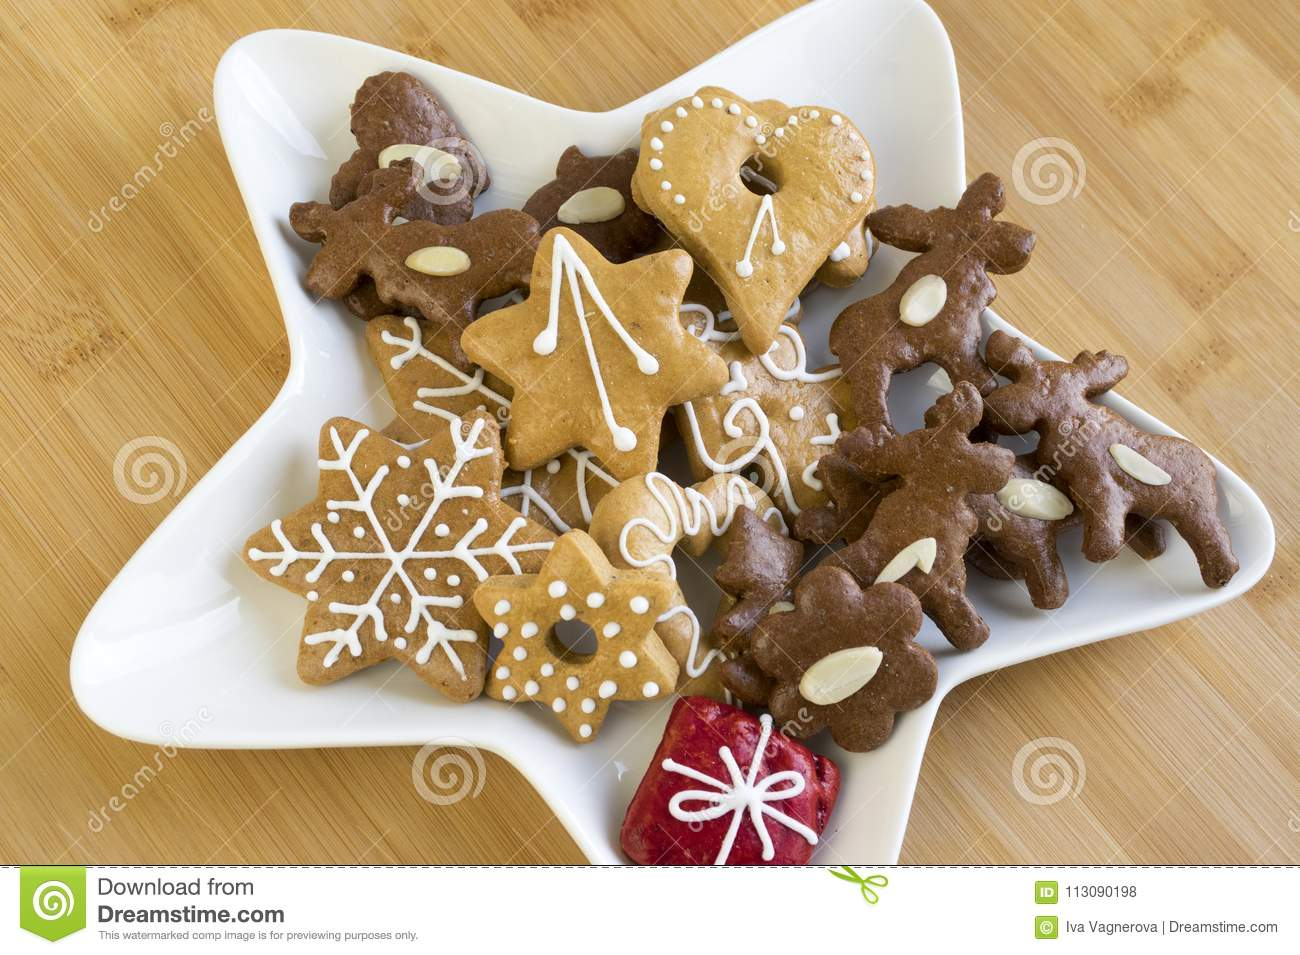 Many Kinds Of Christmas Cookies On White Plate Gingerbread Dark And